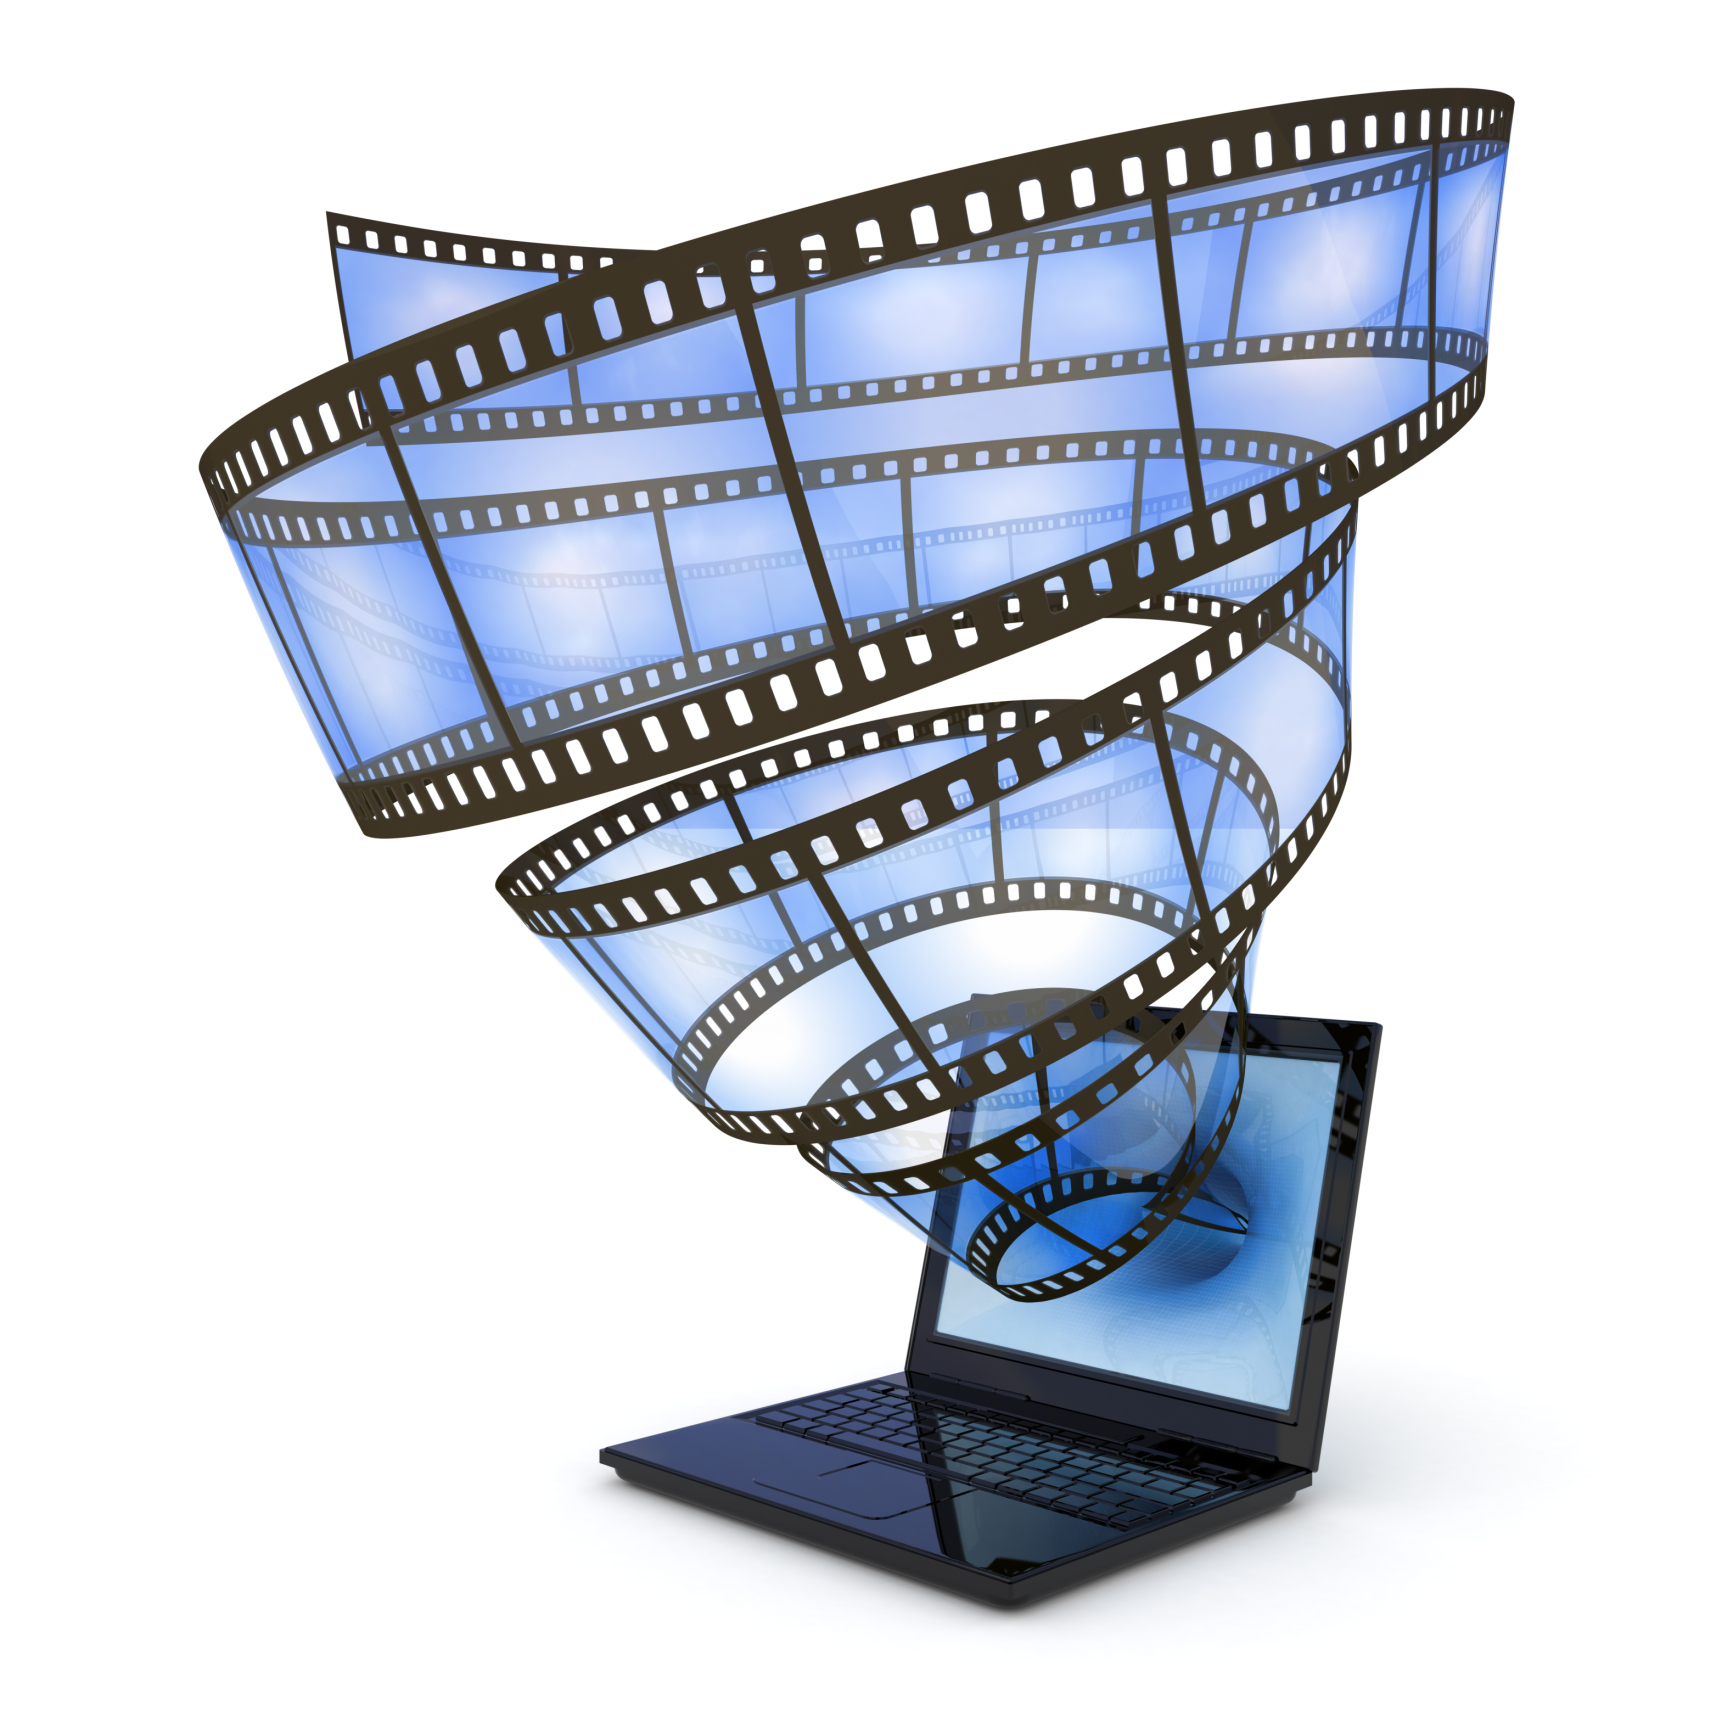 Compressing Video for Sharing